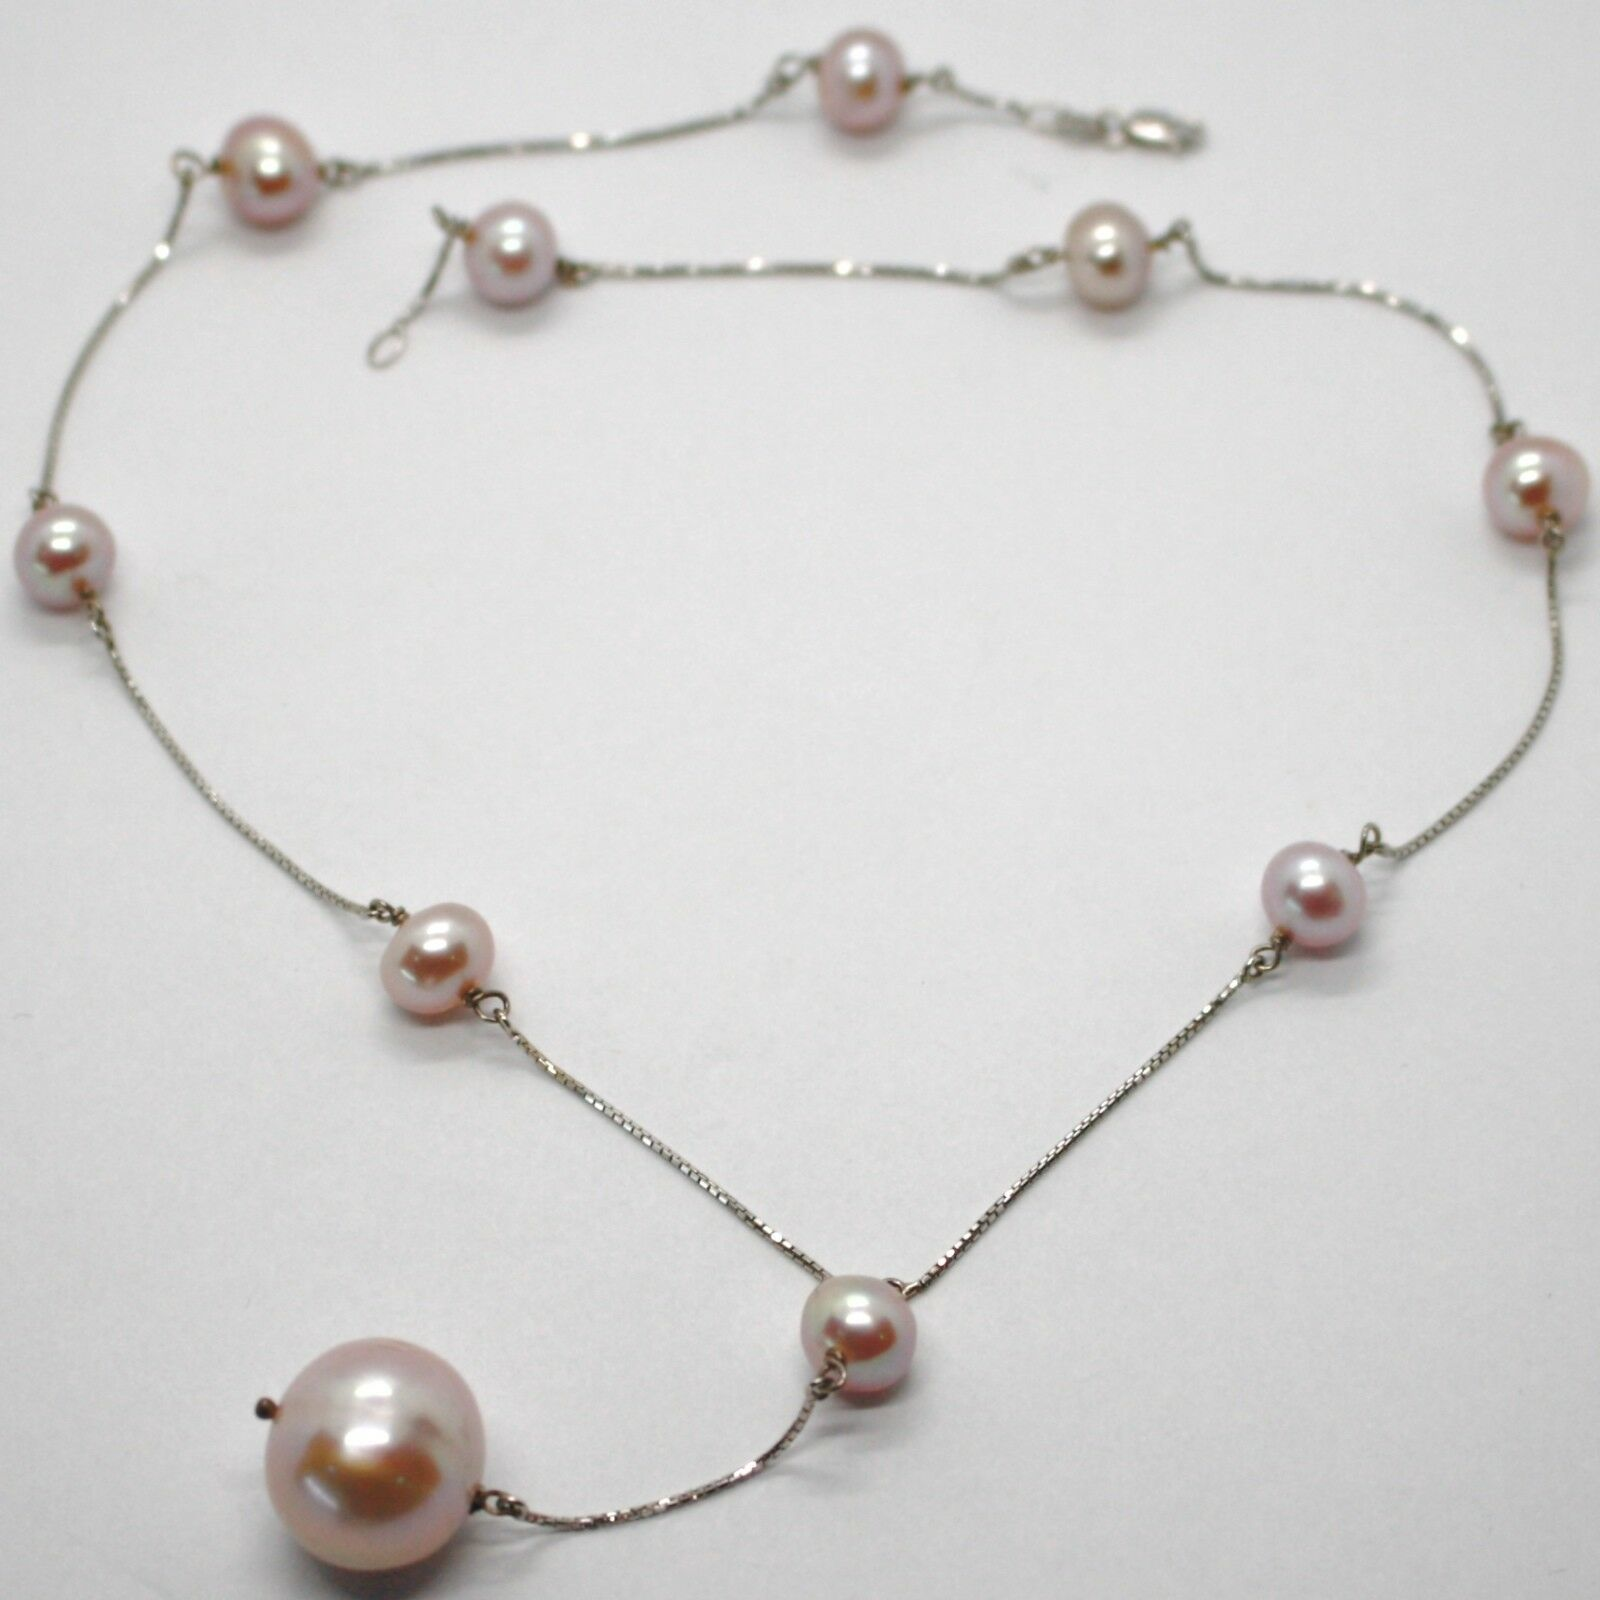 18K WHITE GOLD LARIAT NECKLACE, VENETIAN CHAIN ALTERNATE PURPLE BIG PEARLS 16 MM